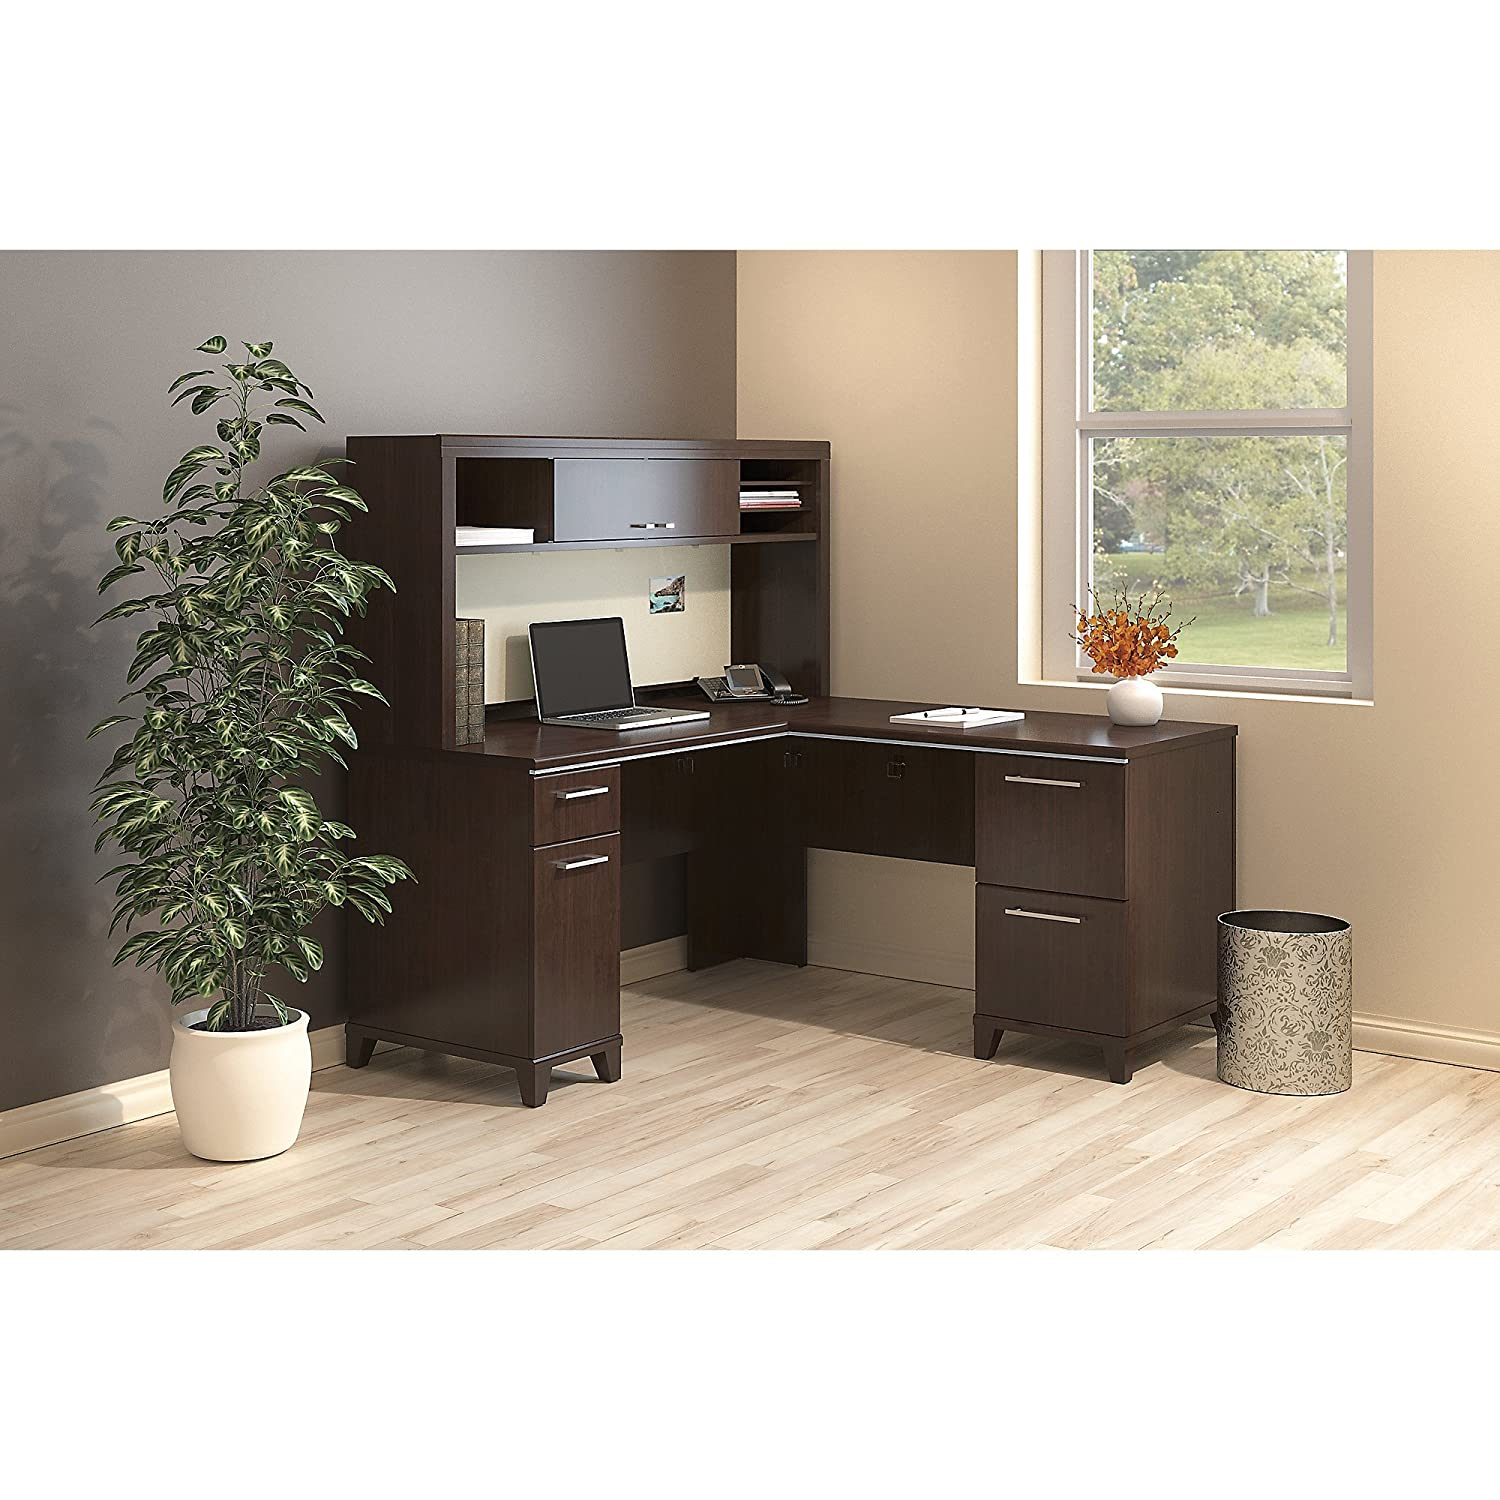 Amazon.com: Bush Business Muebles Enterprise 60 W x 60d l ...